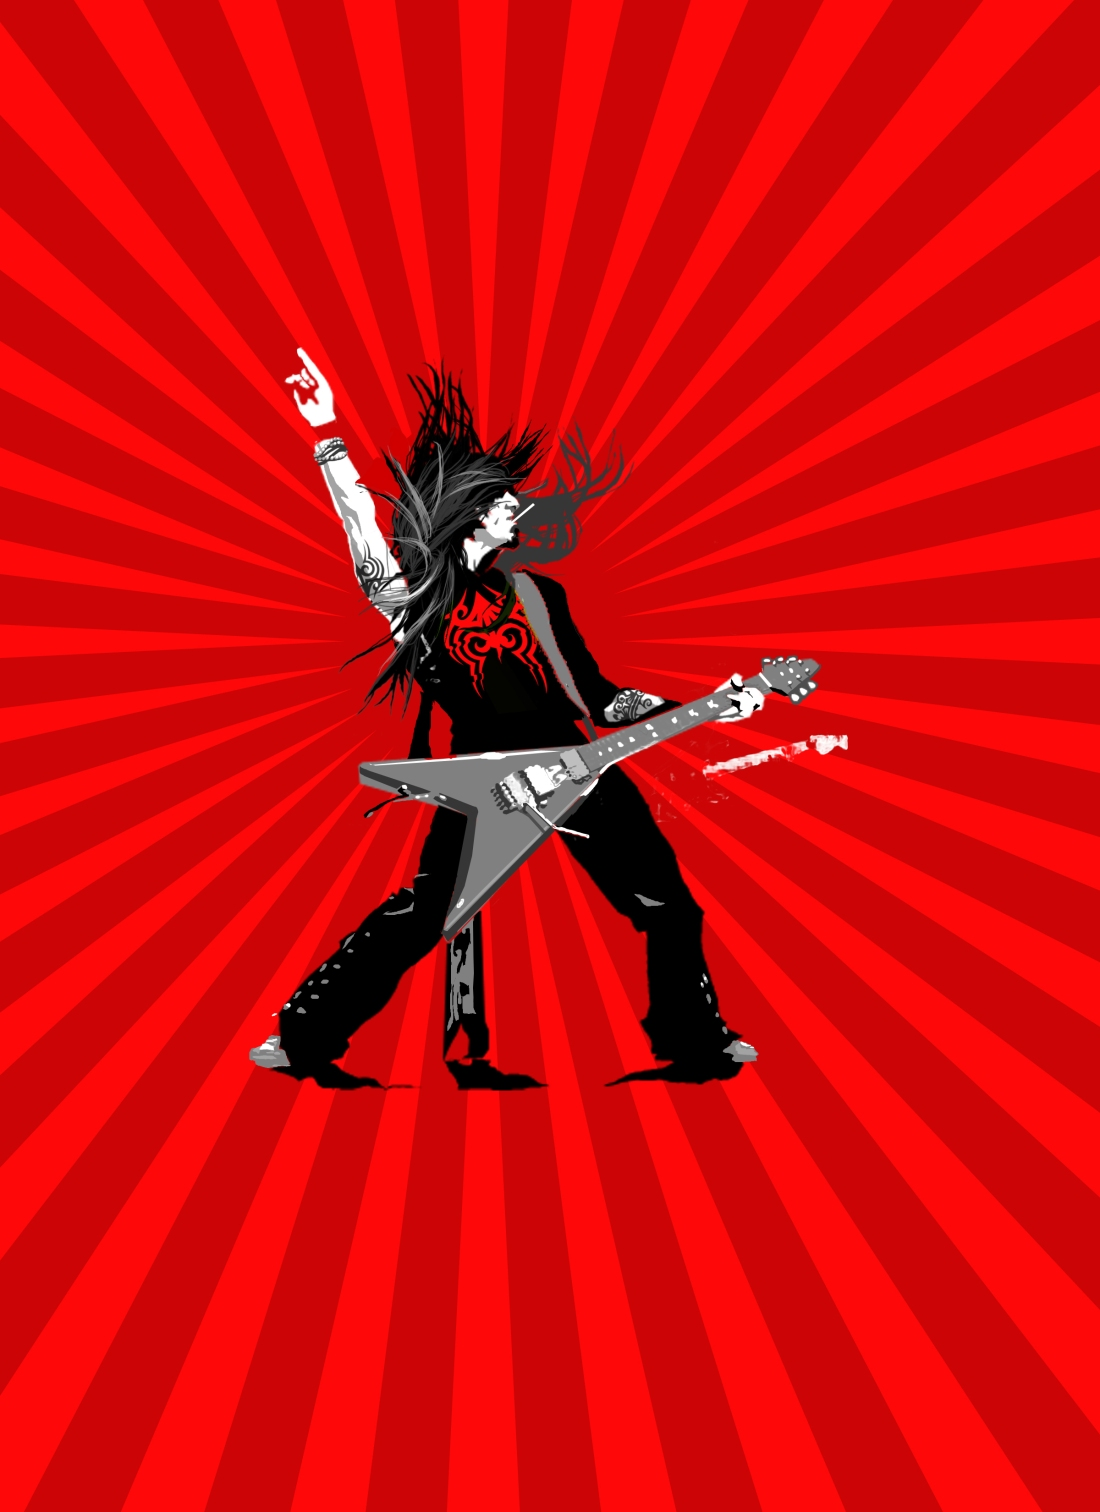 Gary_Freeman_illustration_Guitar player2b